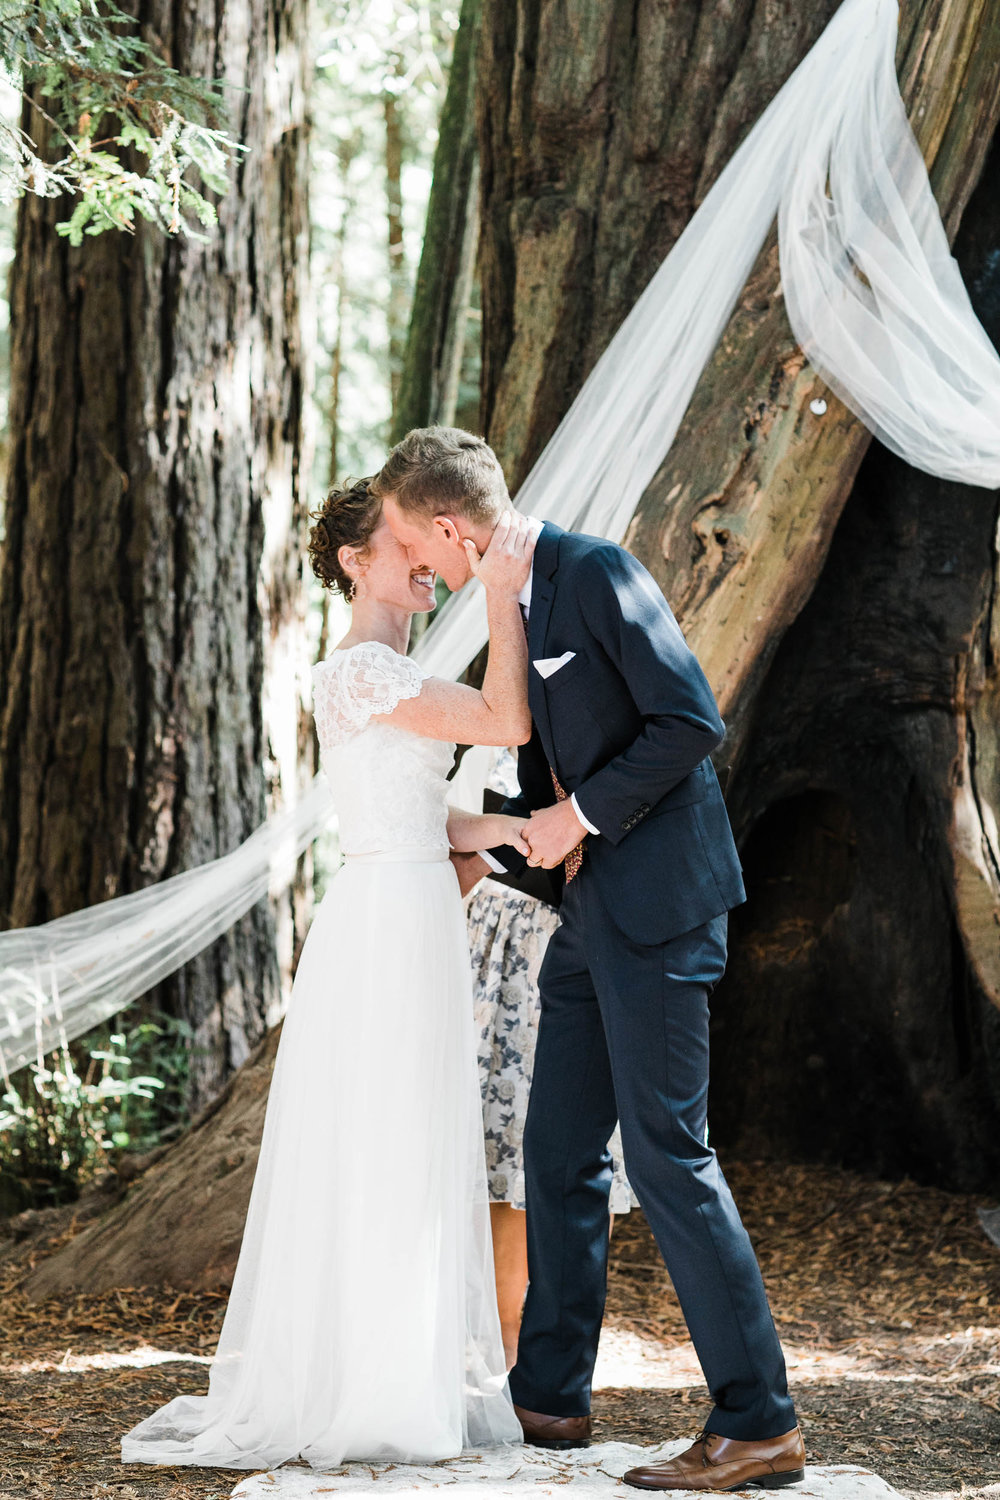 092918_J+S_Mt Madonna Redwoods Wedding_Buena Lane Photography_043.jpg